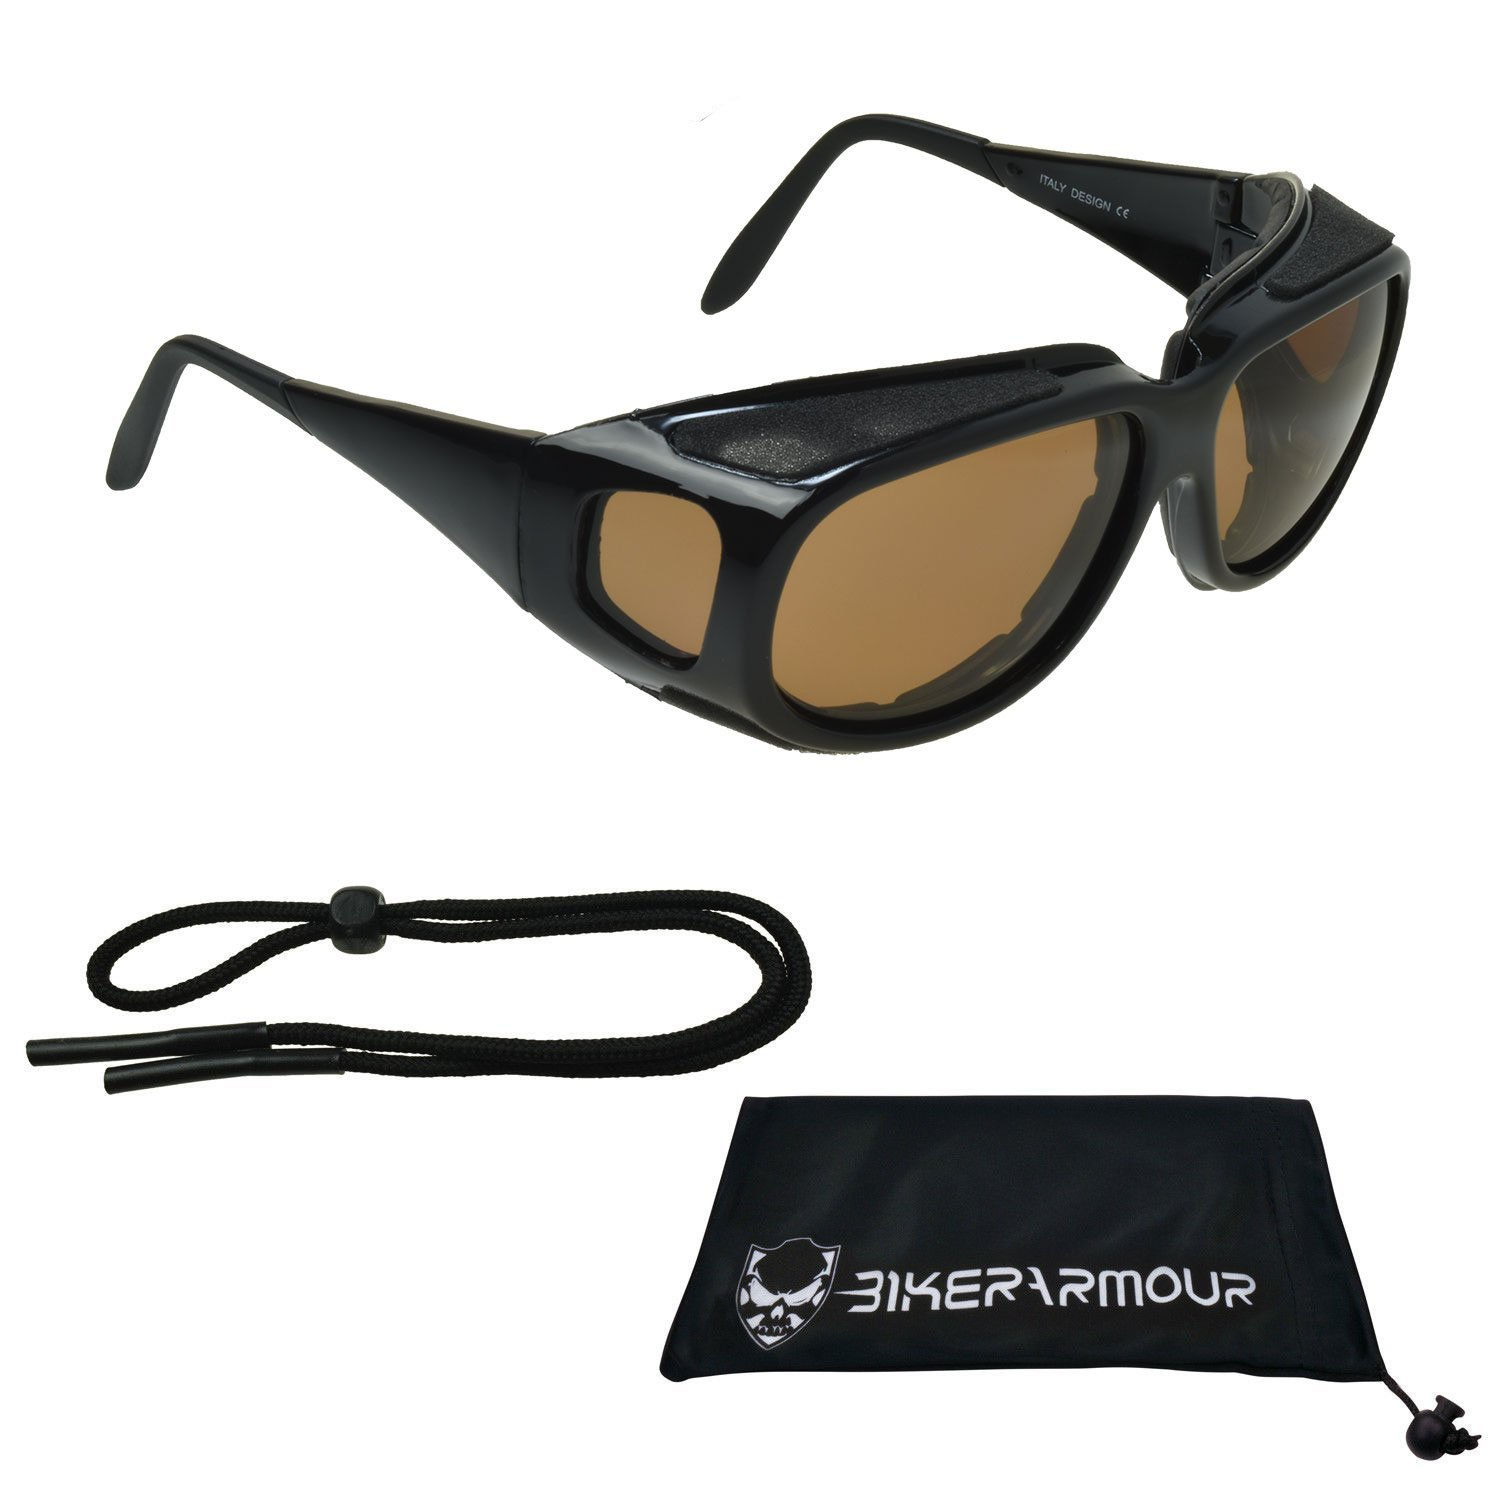 065facd6309 Get Quotations · Polarized Motorcycle sunglasses over RX glasses side  shields with sunglass strap and large microfiber cleaning case